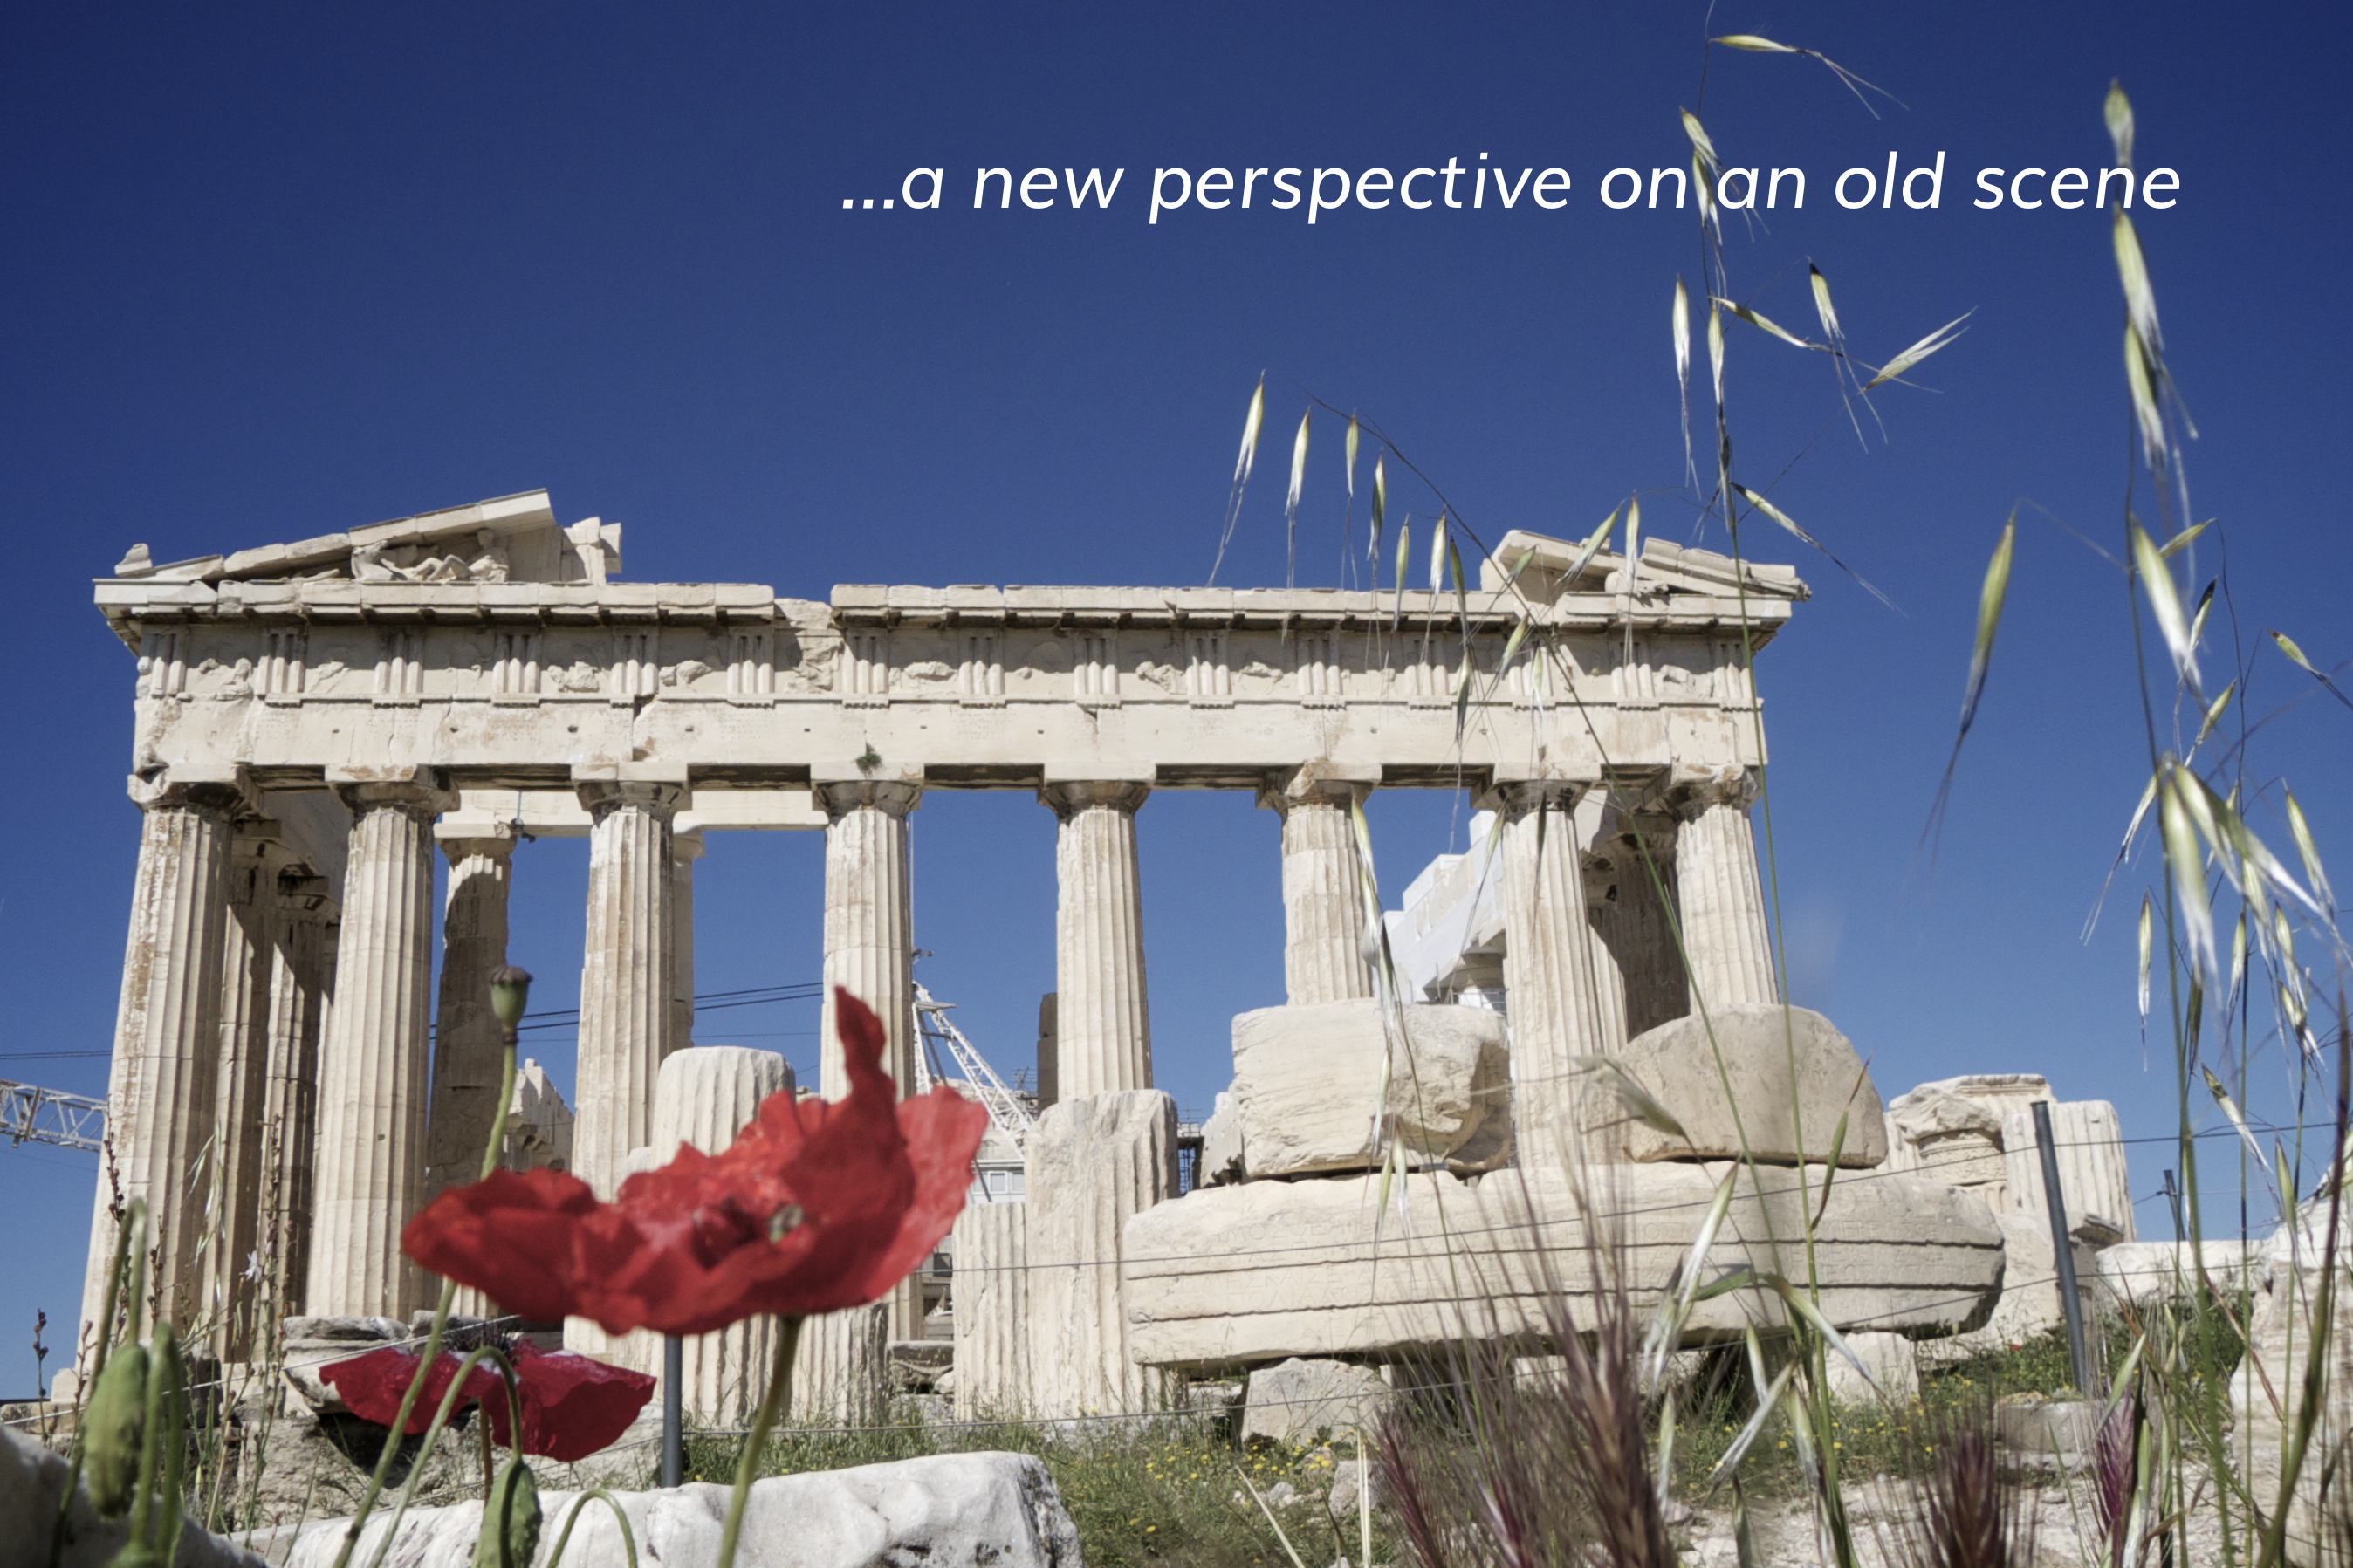 Low view of poppies in the foreground going to the Parthenon, Athens, Greece